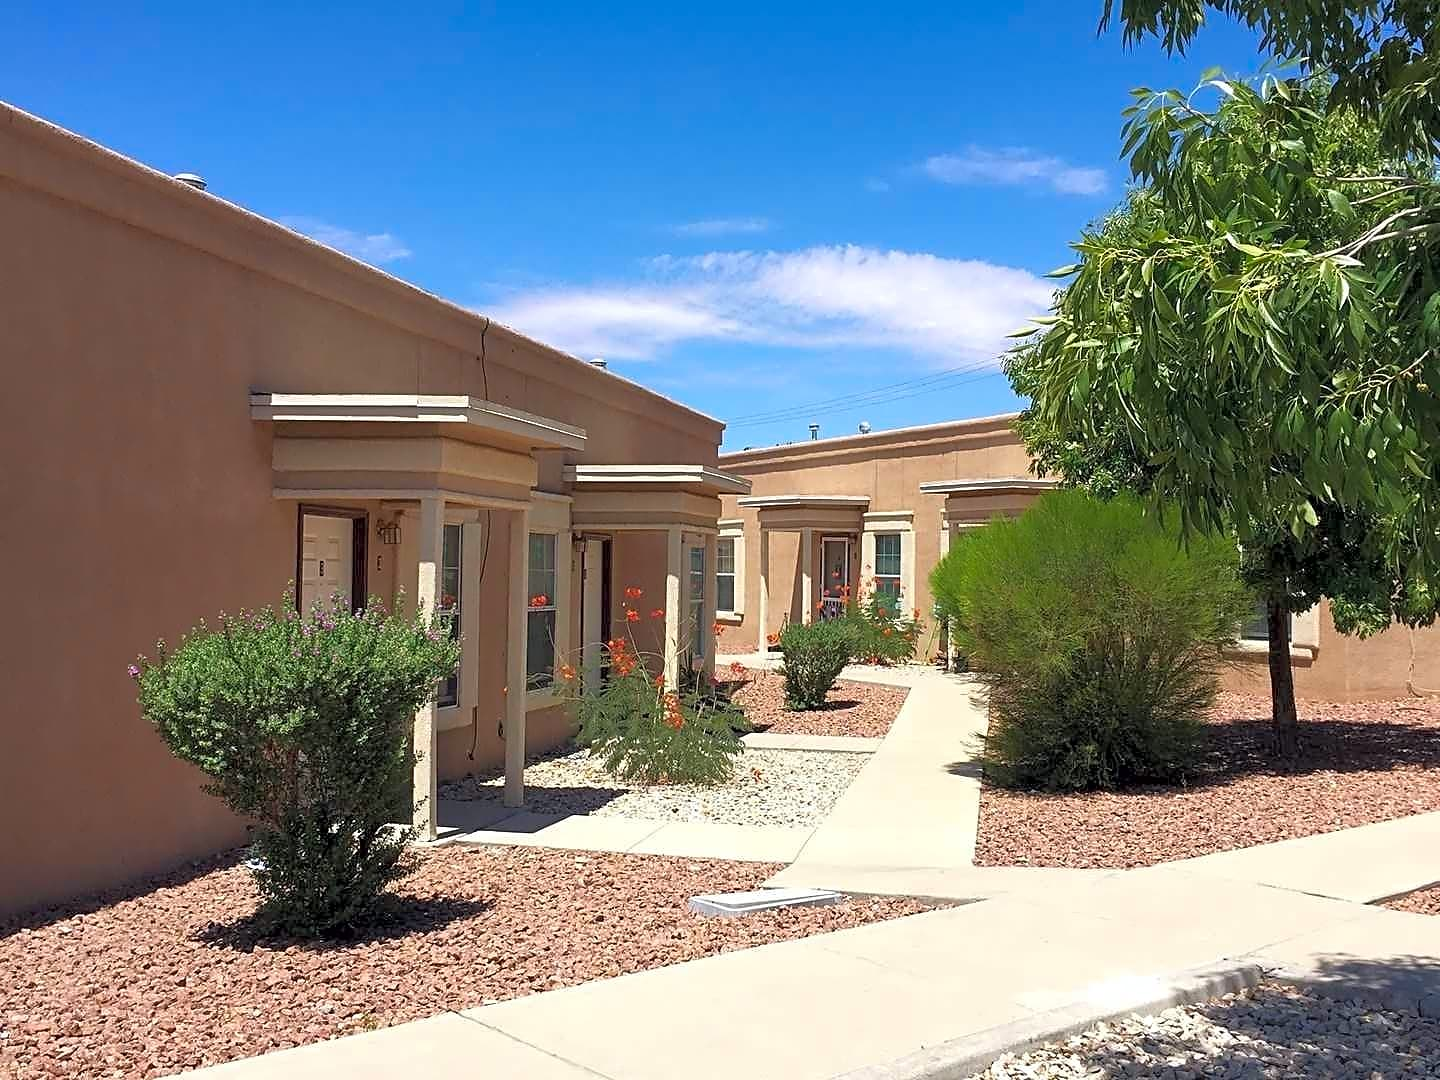 Browse apartments for rent in Westside El Paso El Paso, TX. Compare ratings, reviews, 3D floor plans, and high res images.